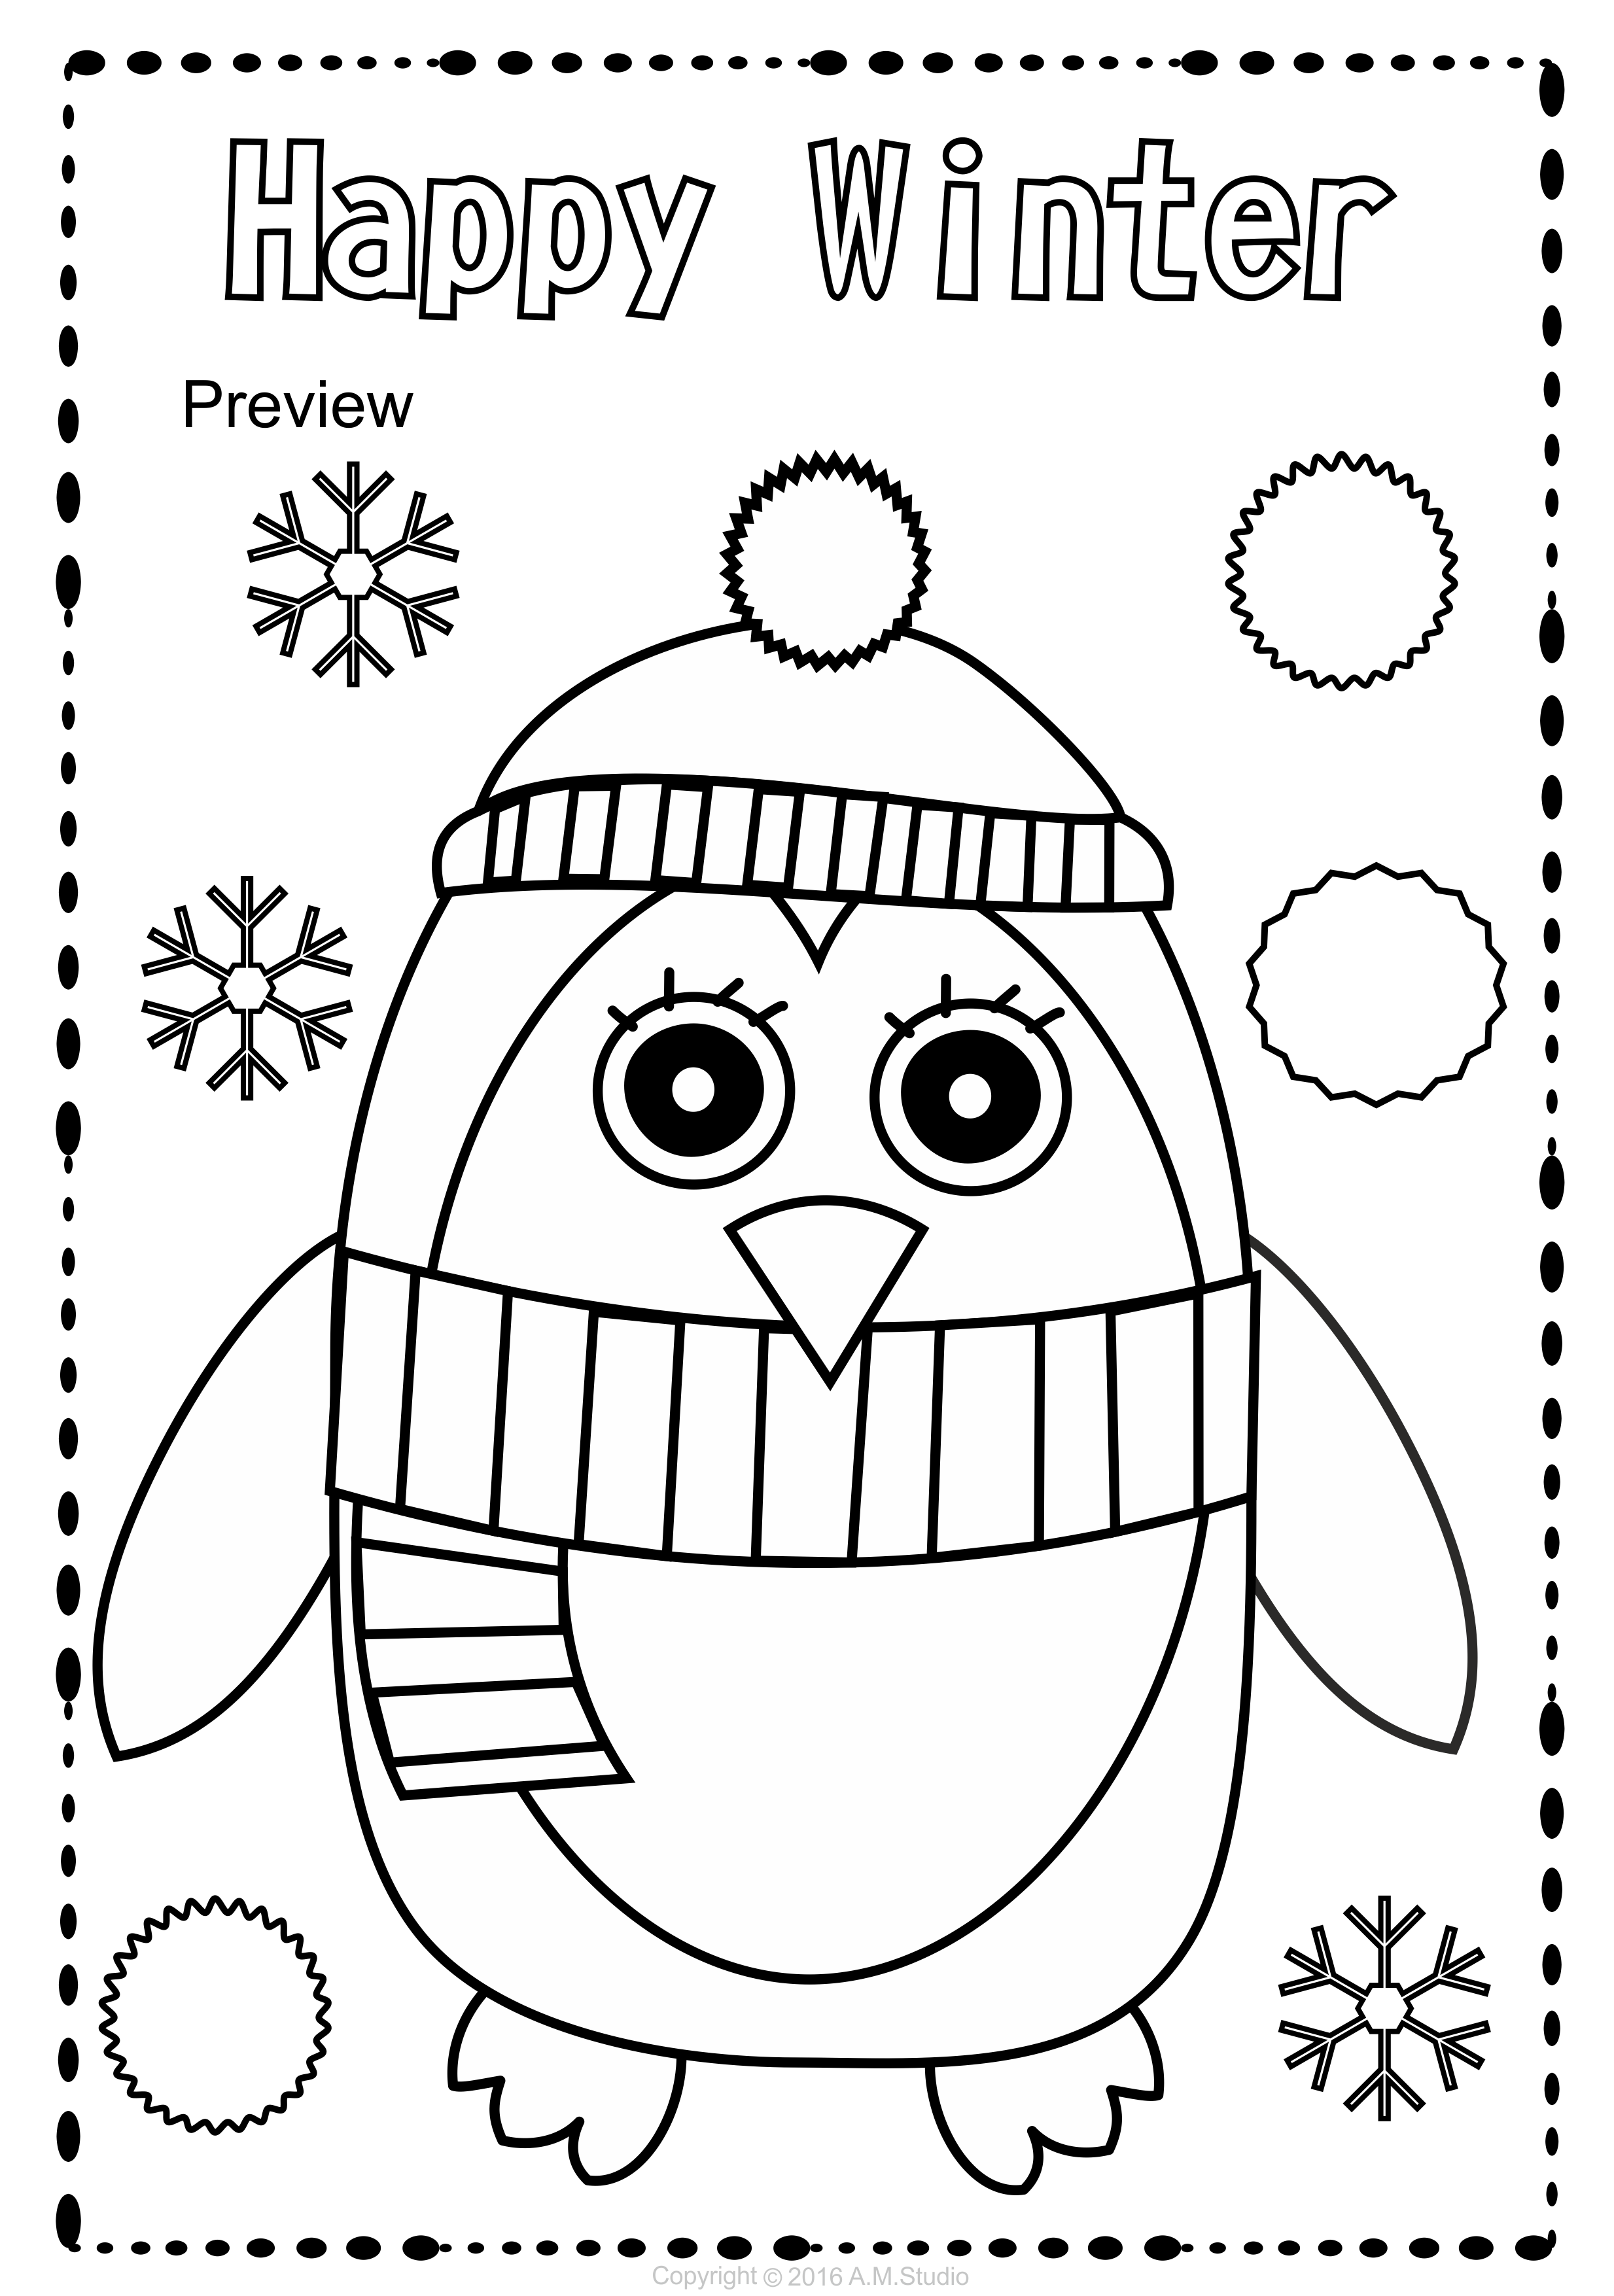 This Winter Coloring Pages Activity Includes 25 Different Coloring Worksheets Use These As A Fun Activity Winter Crafts Preschool Coloring Pages Winter Crafts